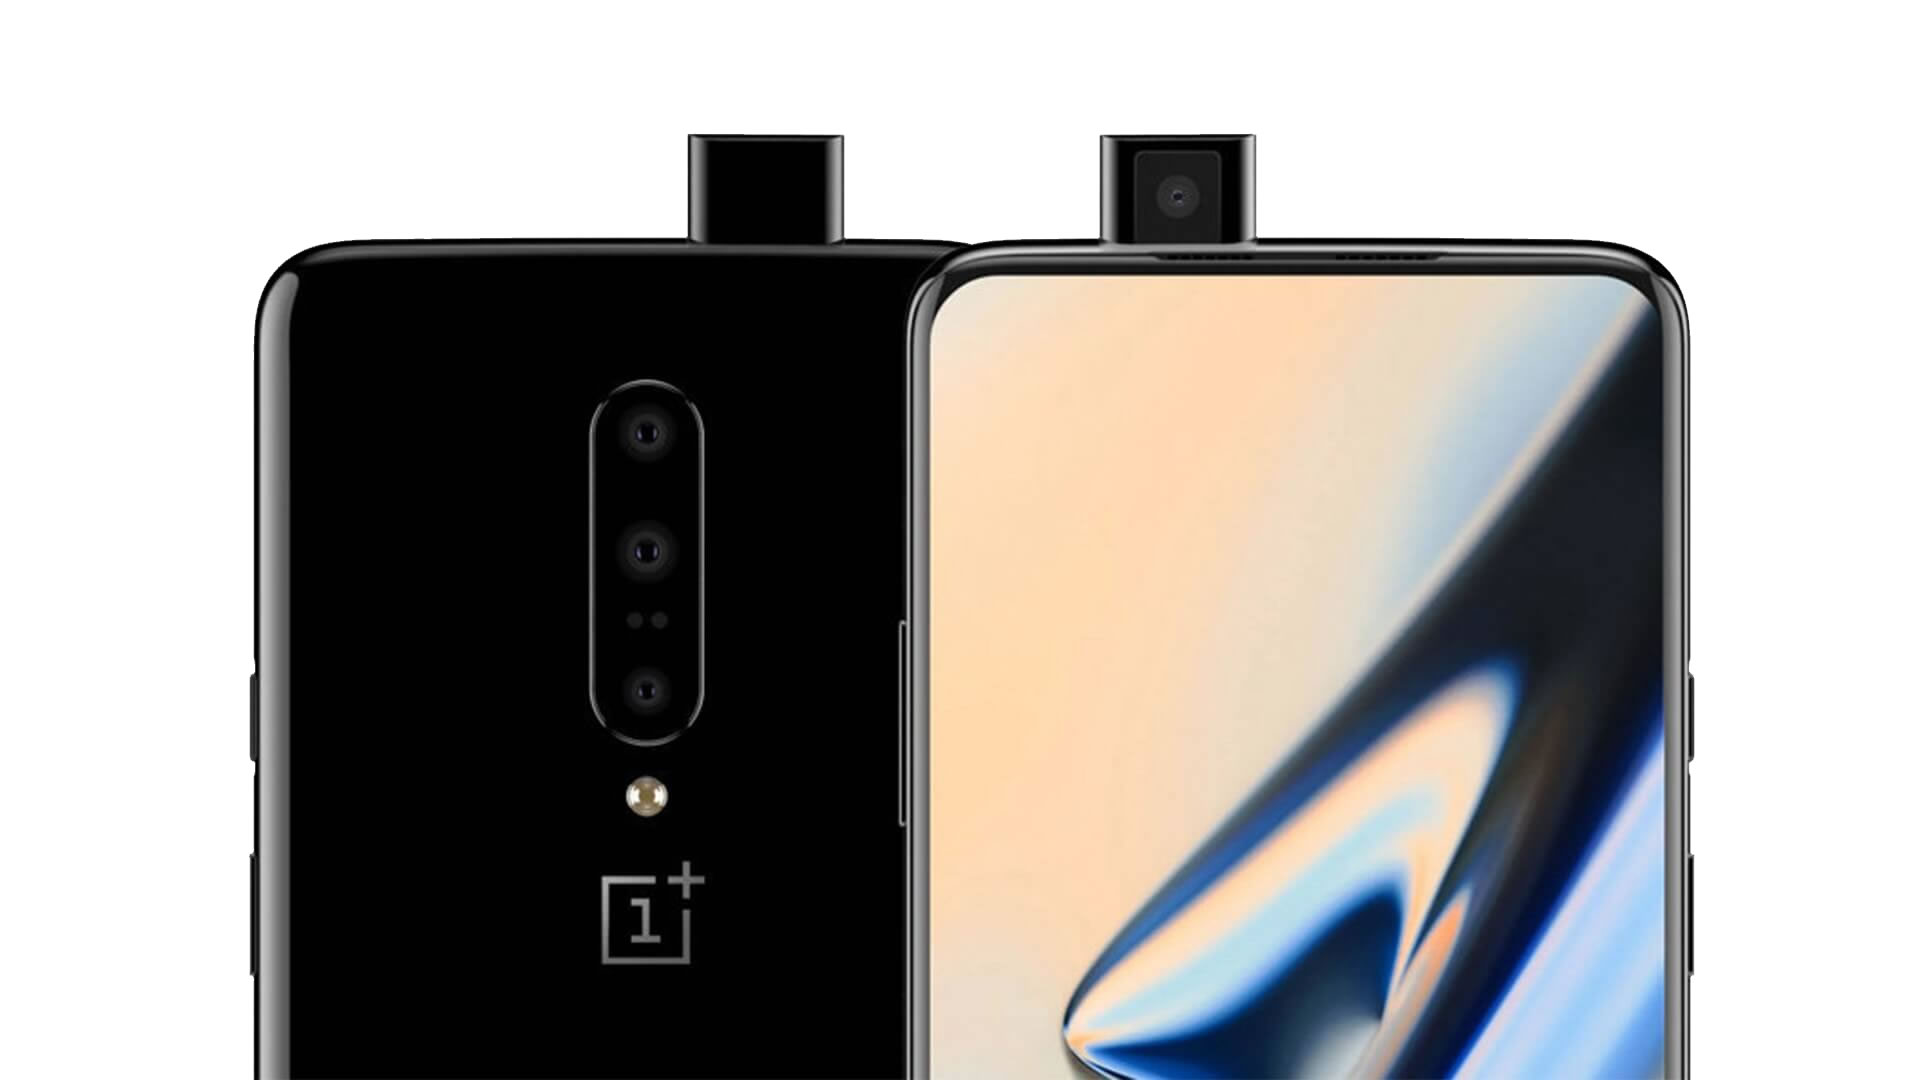 Promo video shows off OnePlus 7 Pro's pop-up camera lifting 49 pounds